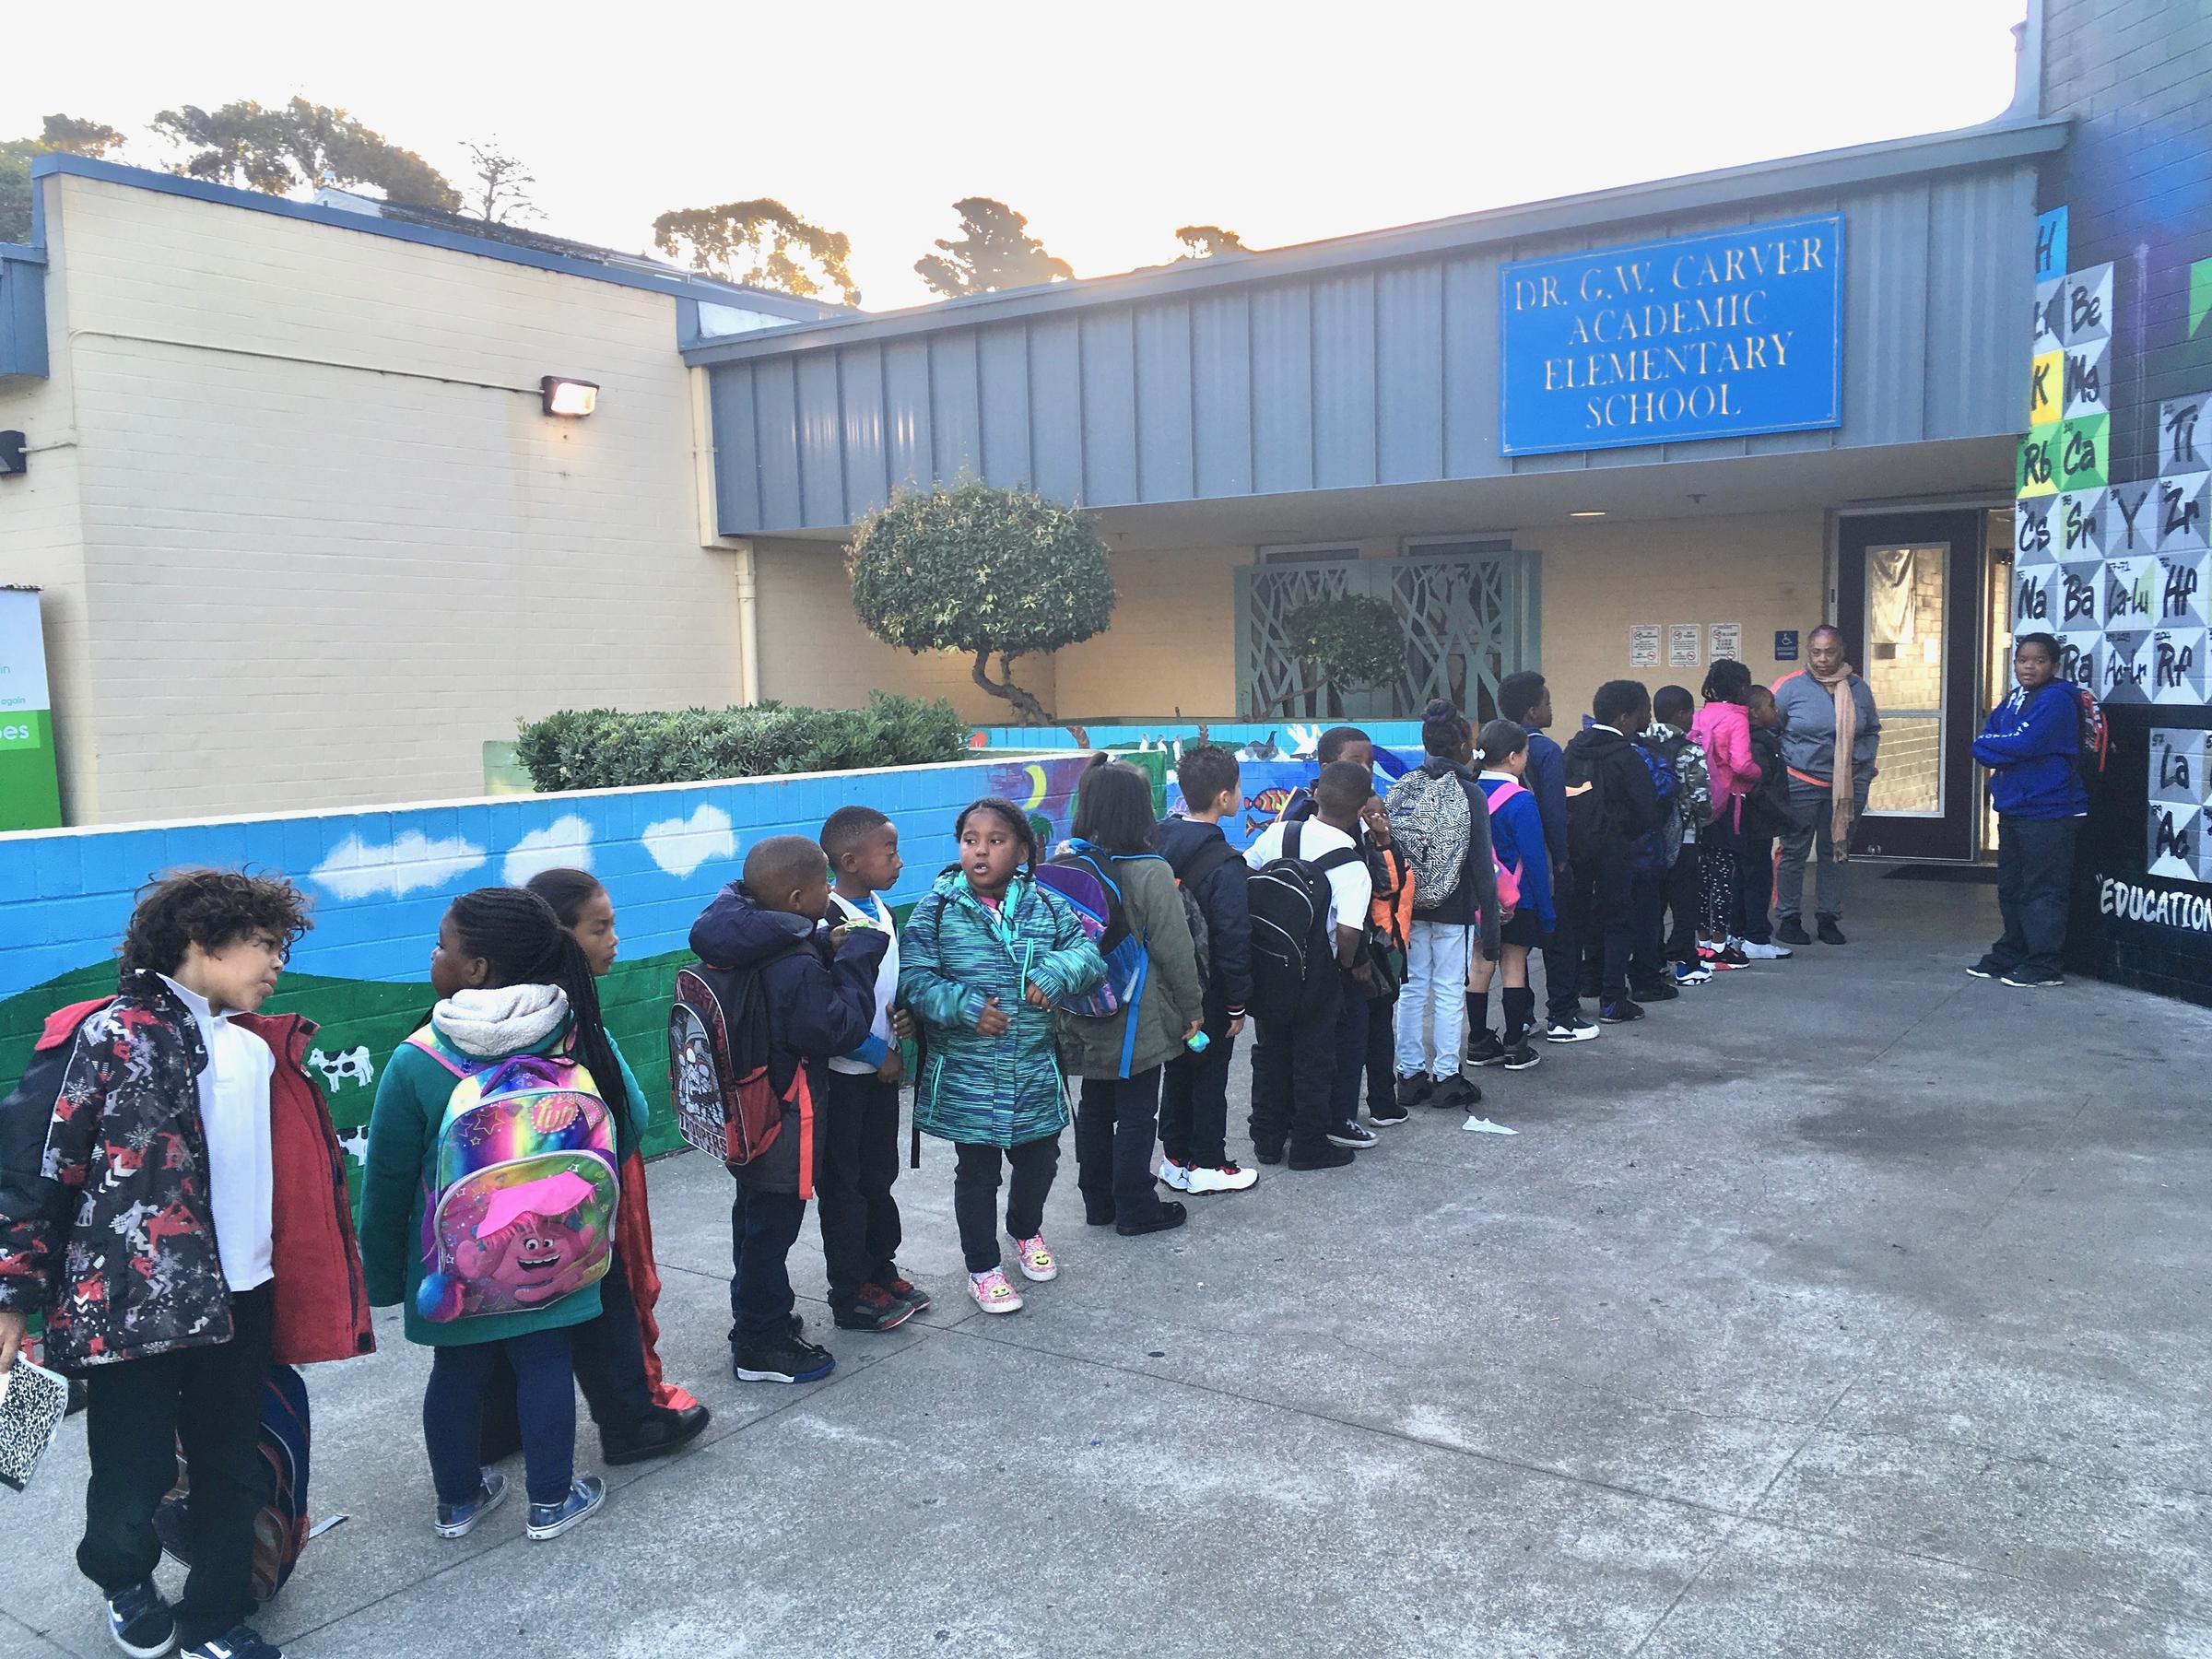 Caption: Carver Elementary students line up to begin the school day at the campus in San Francisco's Bayview district., Credit: Lee Romney / KALW